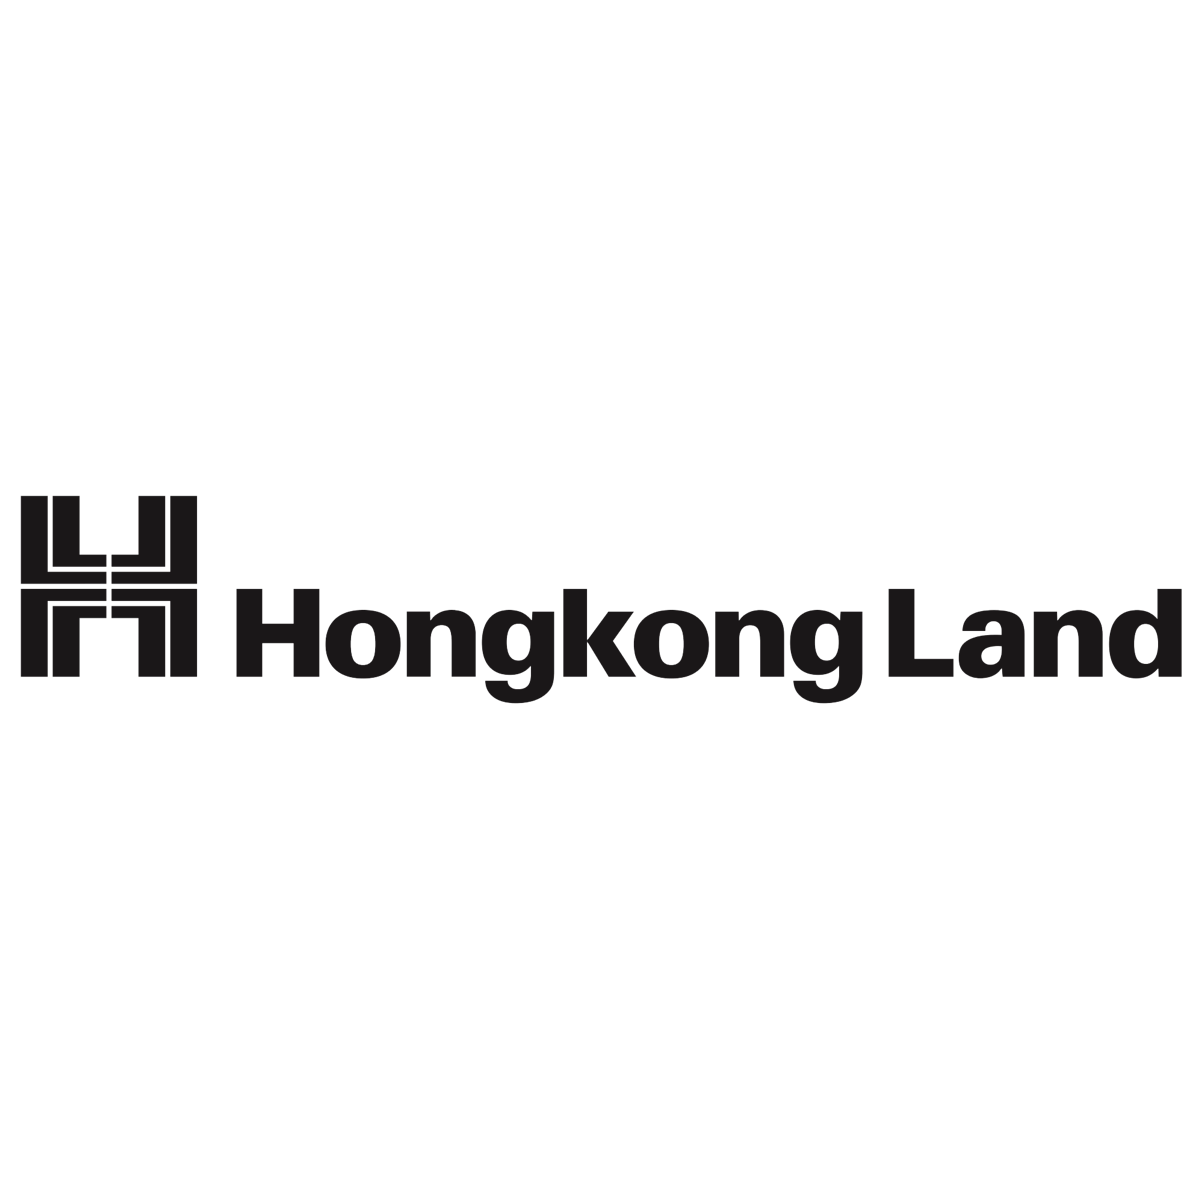 Hongkong Land Holdings Ltd - CIMB Research 2018-03-09: China Could Be A Medium-term Earnings Driver